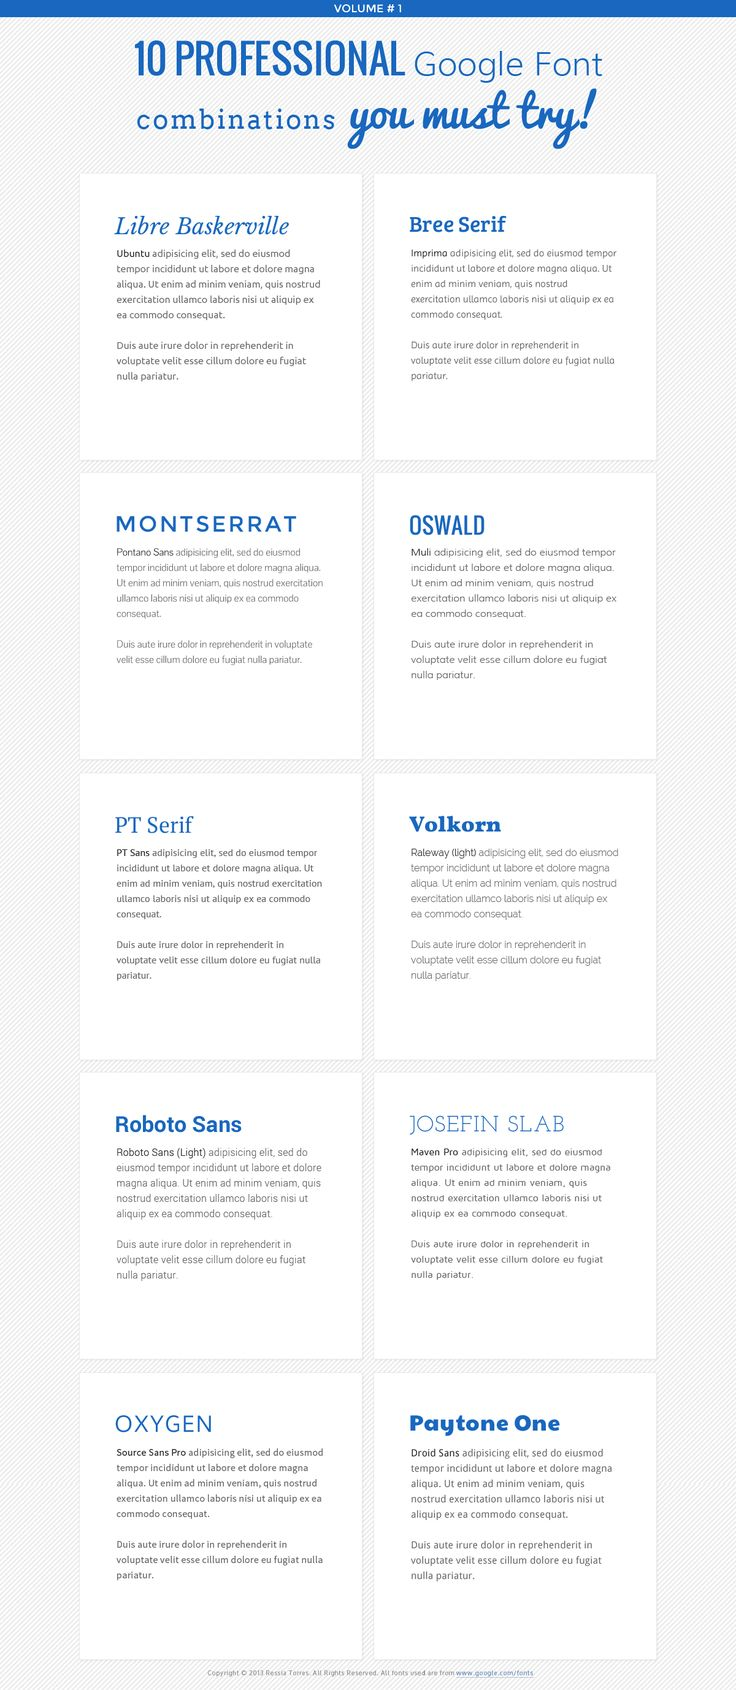 Professional Google Font Combinations to Try